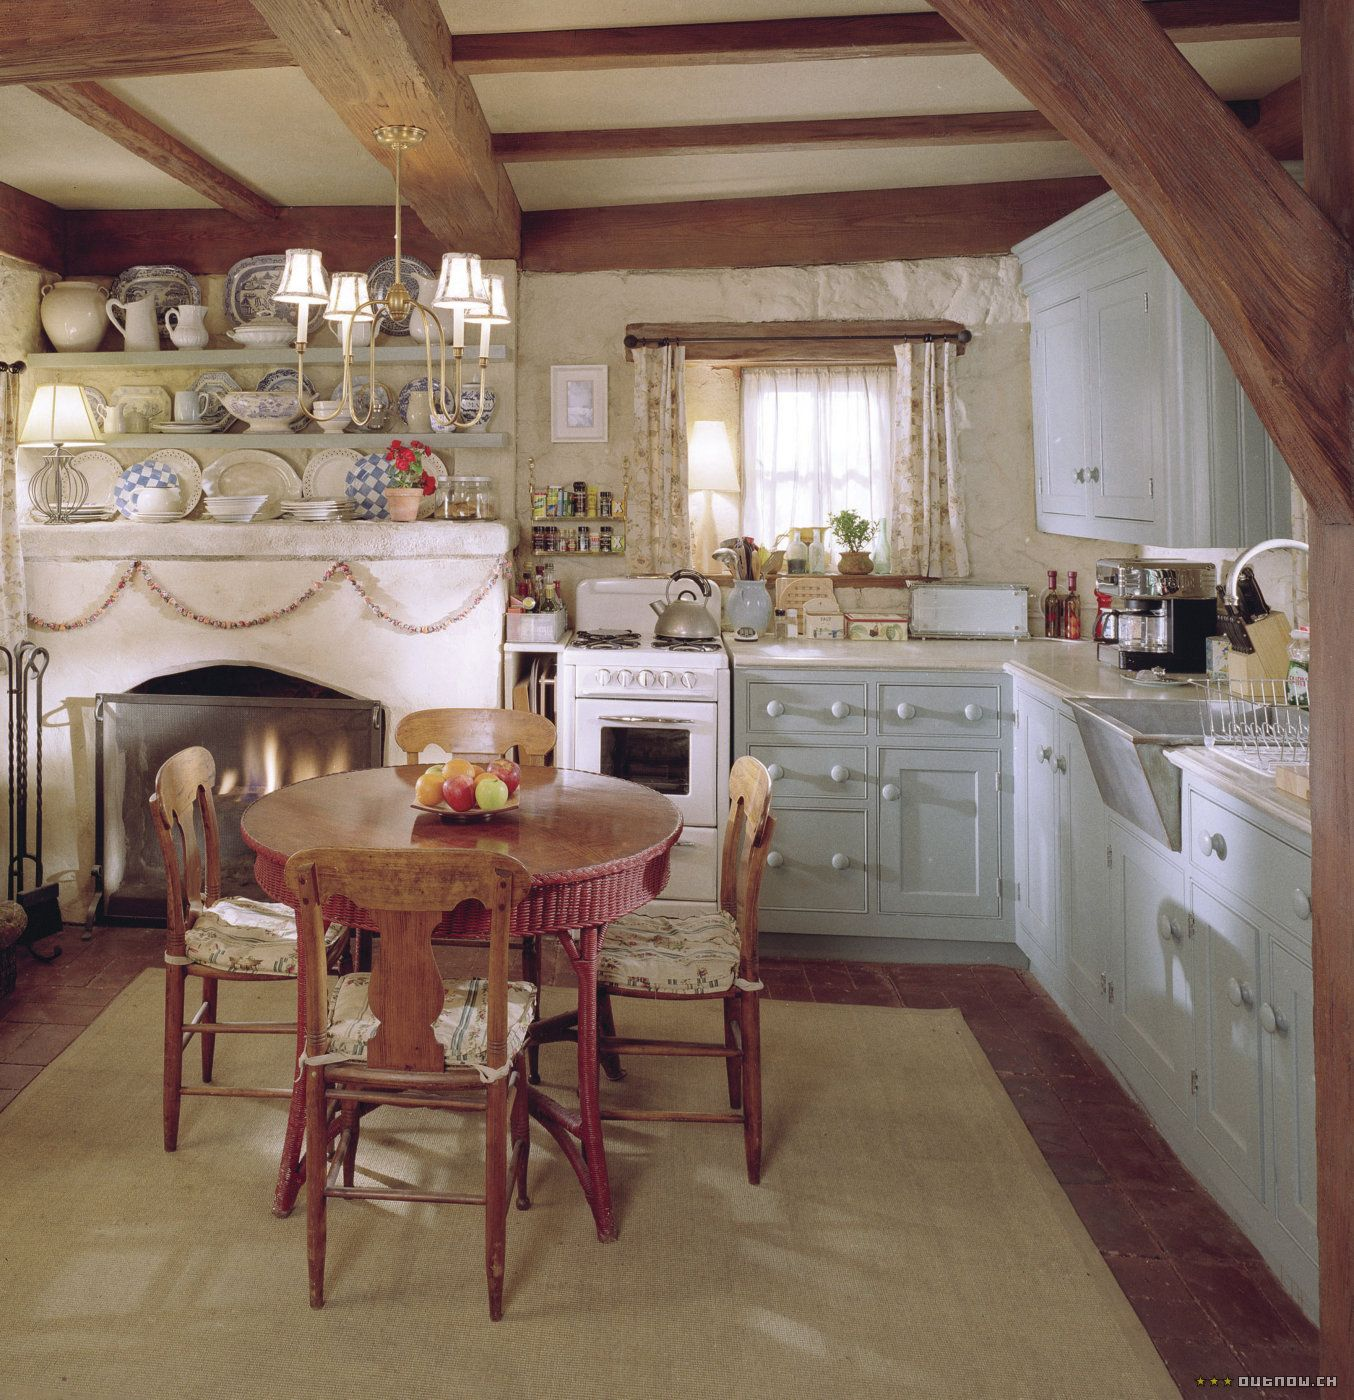 Kitchen - for the best parties are always in this room | my future ...